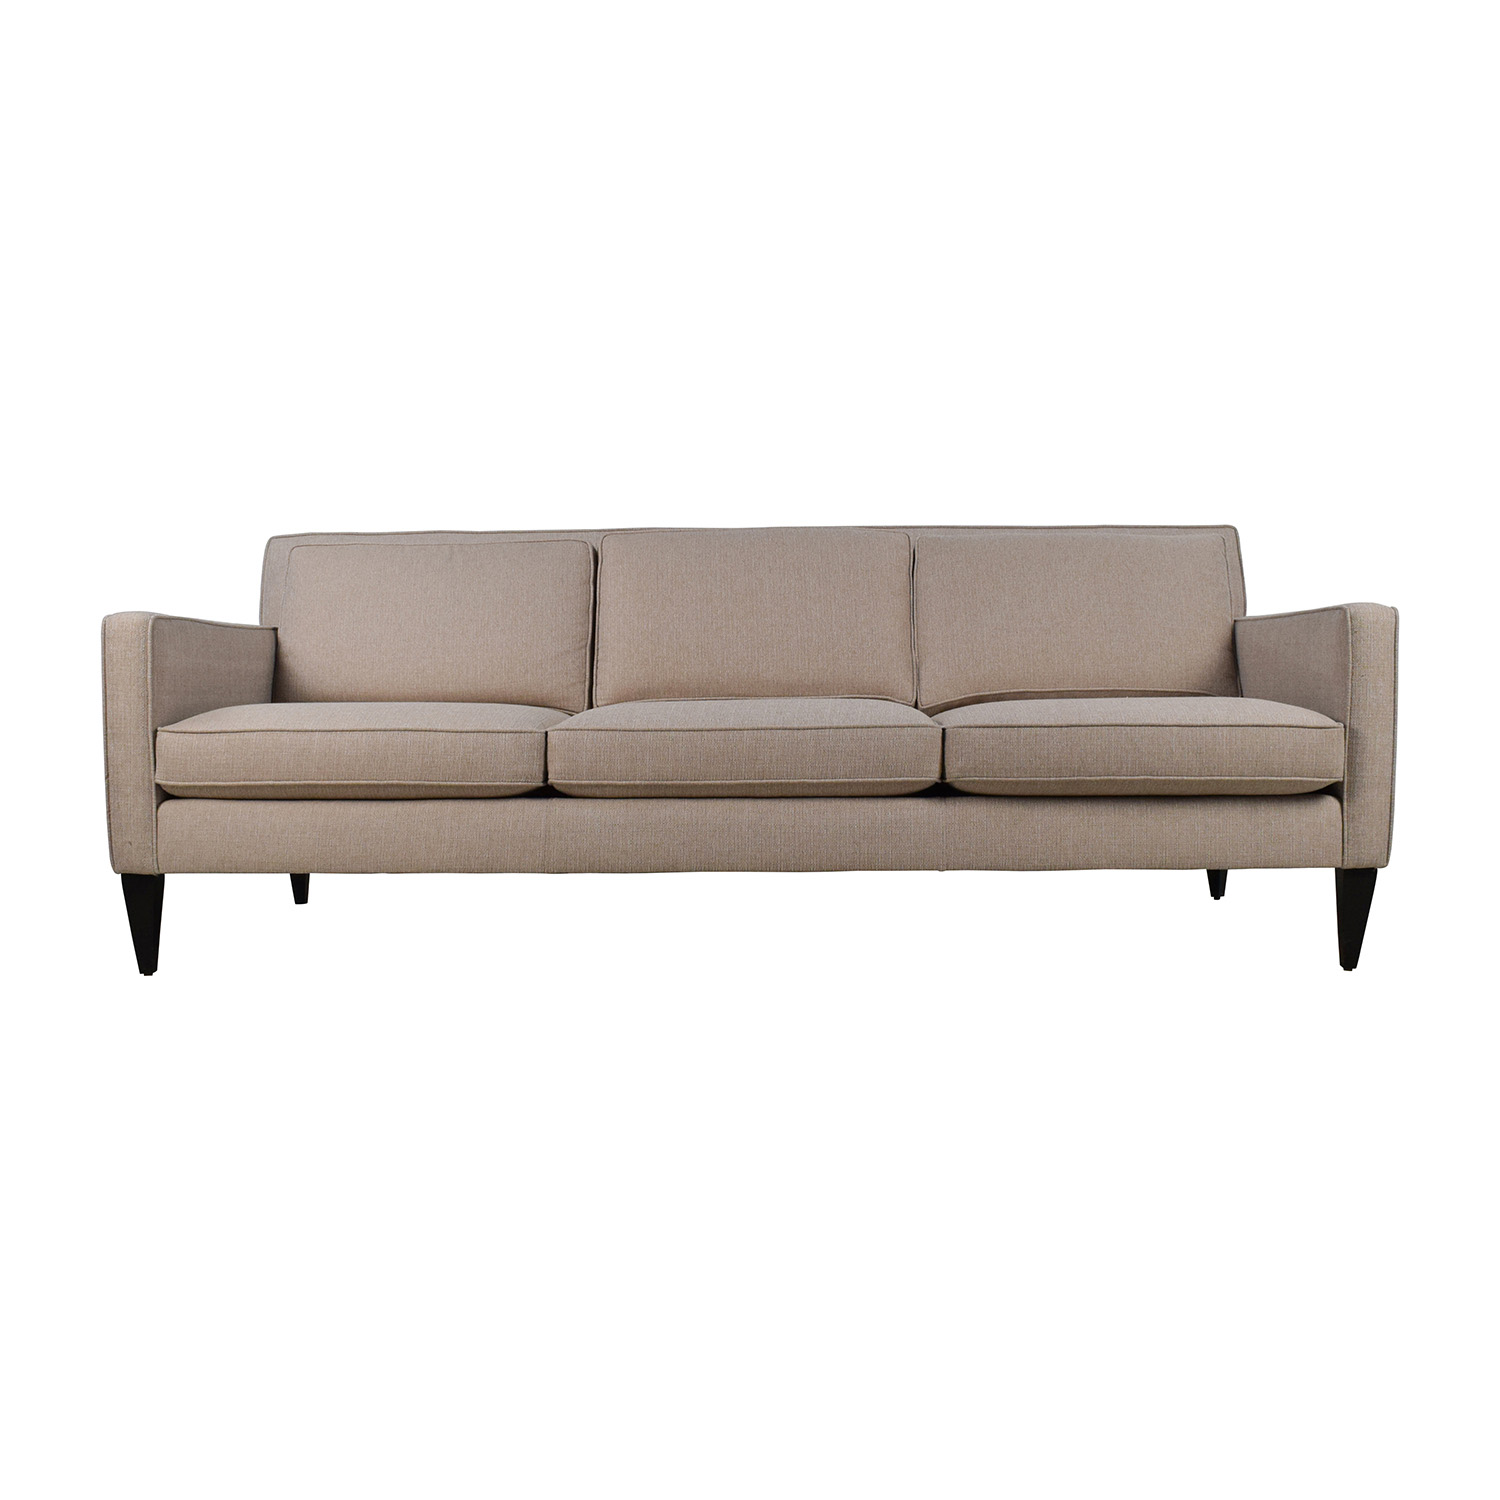 Crate and Barrel Crate & Barrel Rochelle Desert Sofa